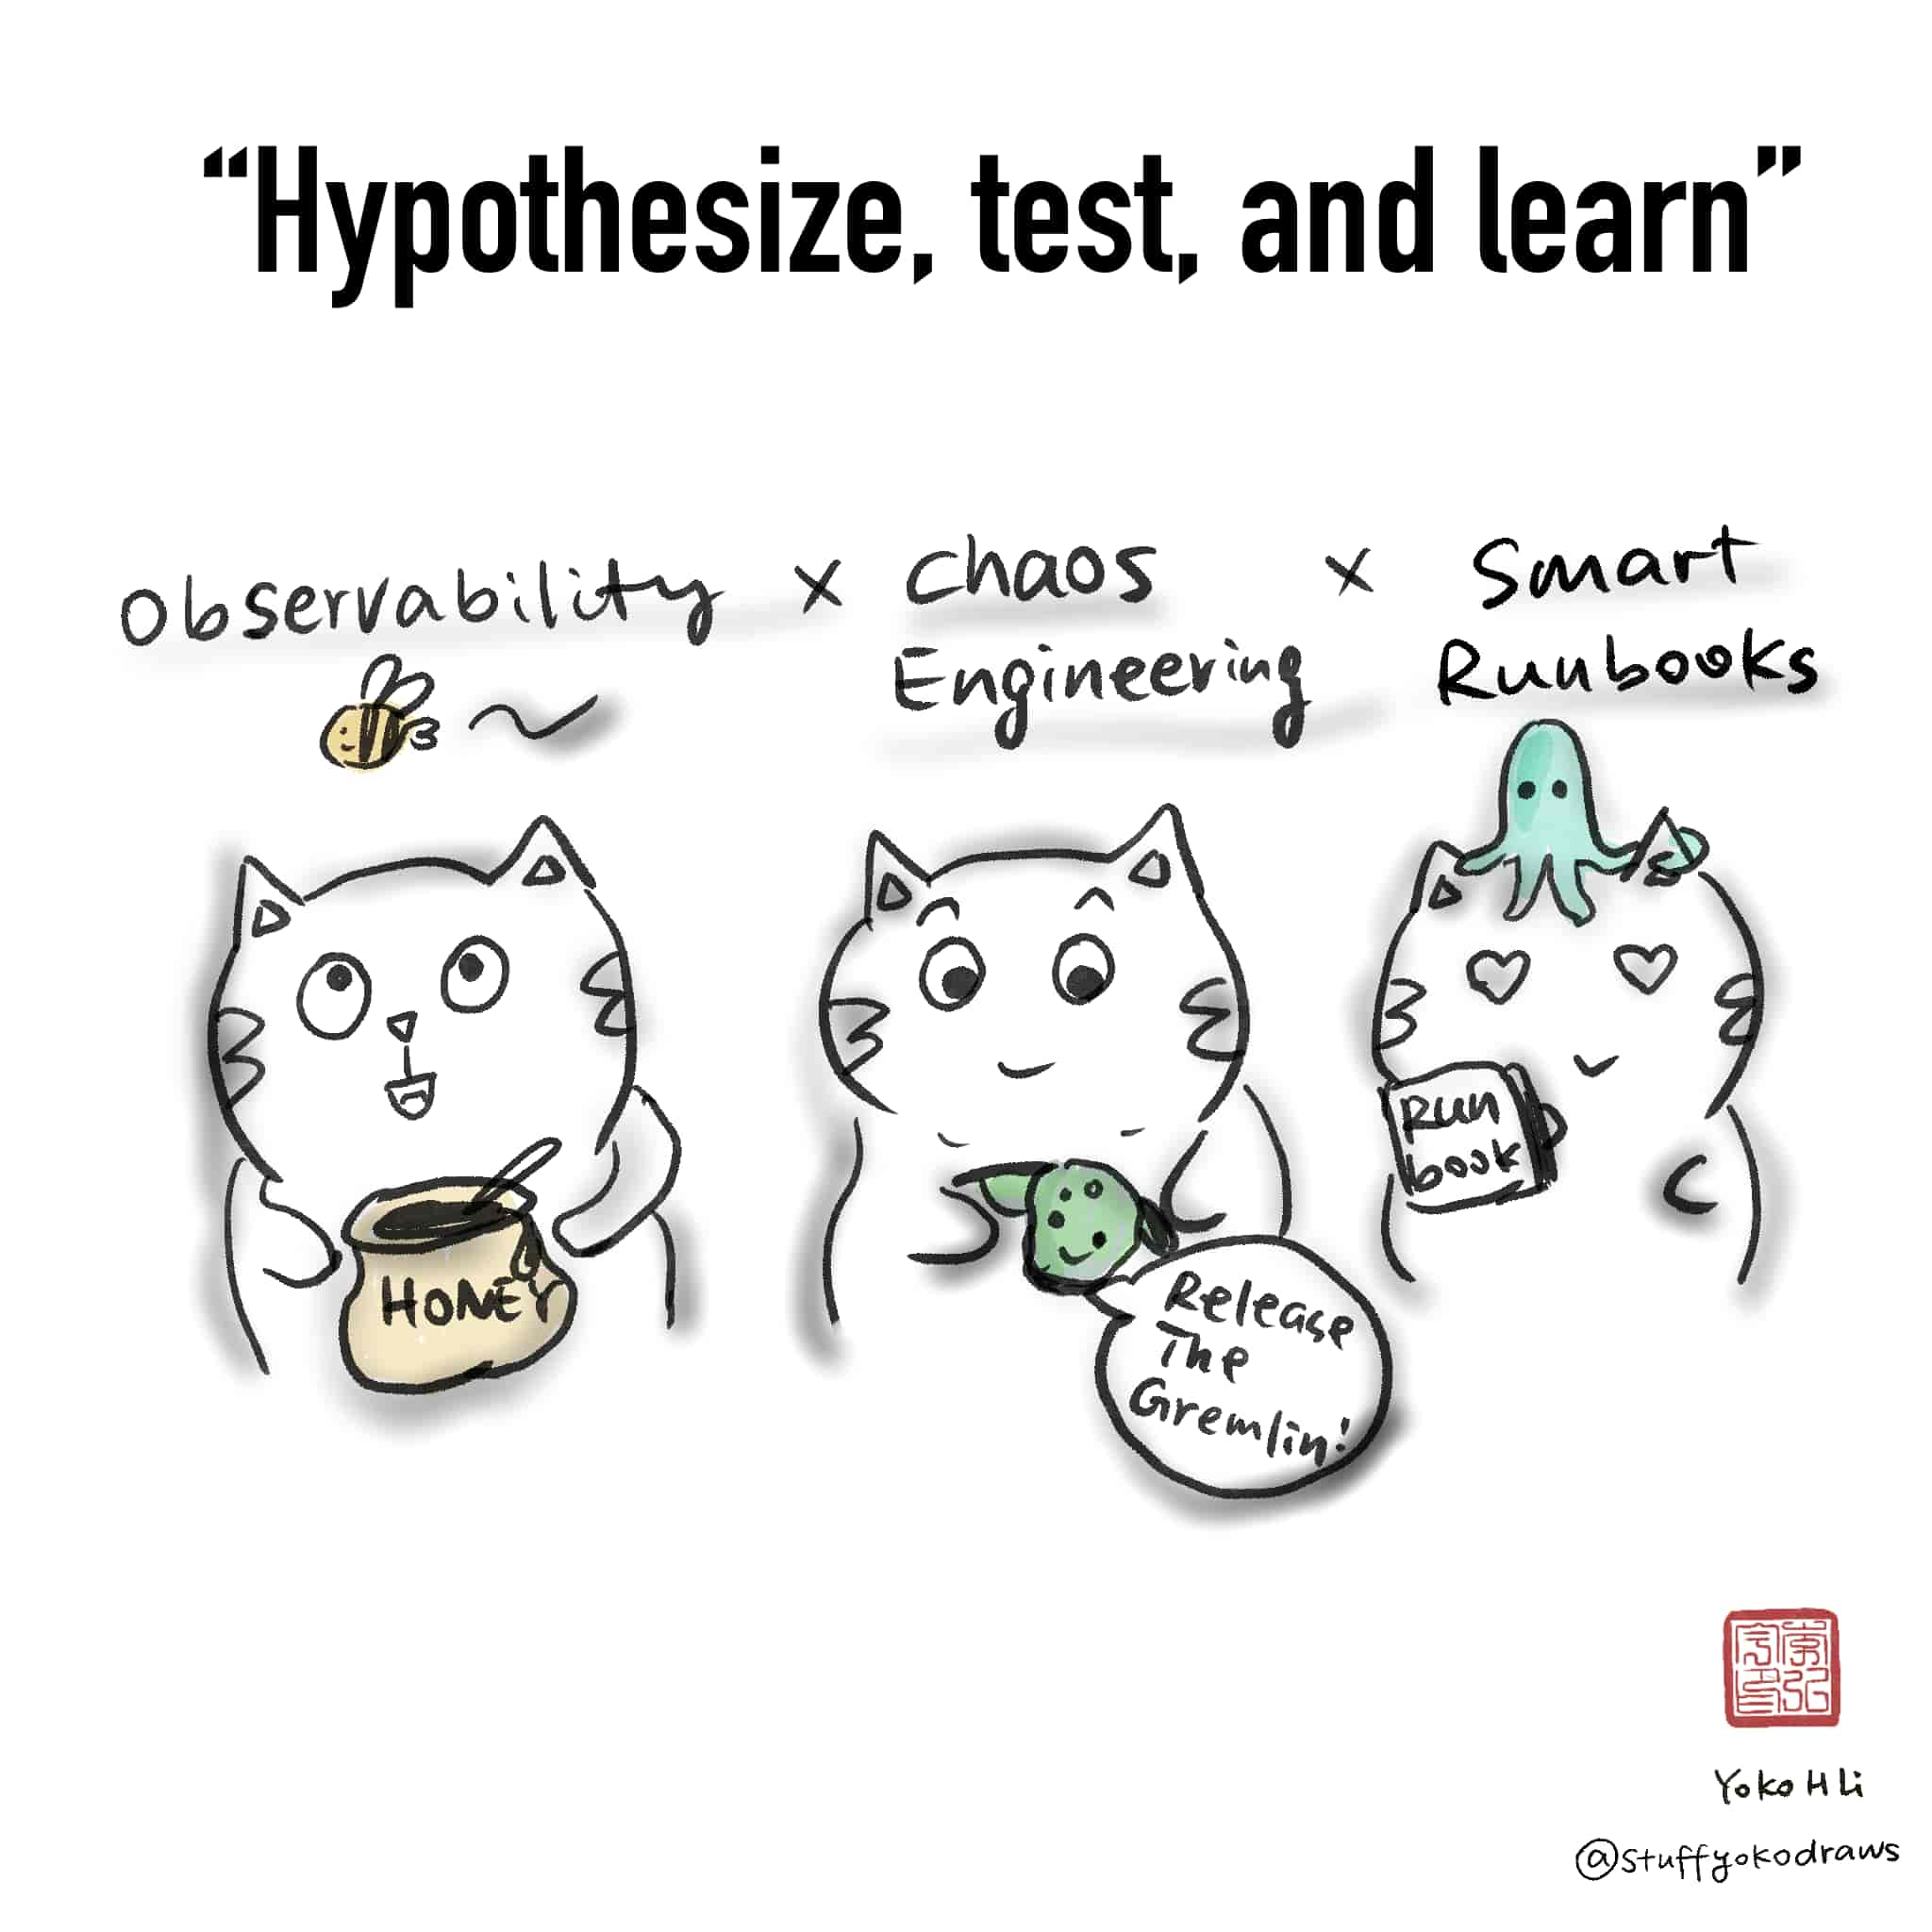 Comic: Hypothesize, test, and learn. Image: Observability with bees (Honeycomb) x Chaos Engineering with Gremlin x Smart Runbooks with Iggy (Transposit)